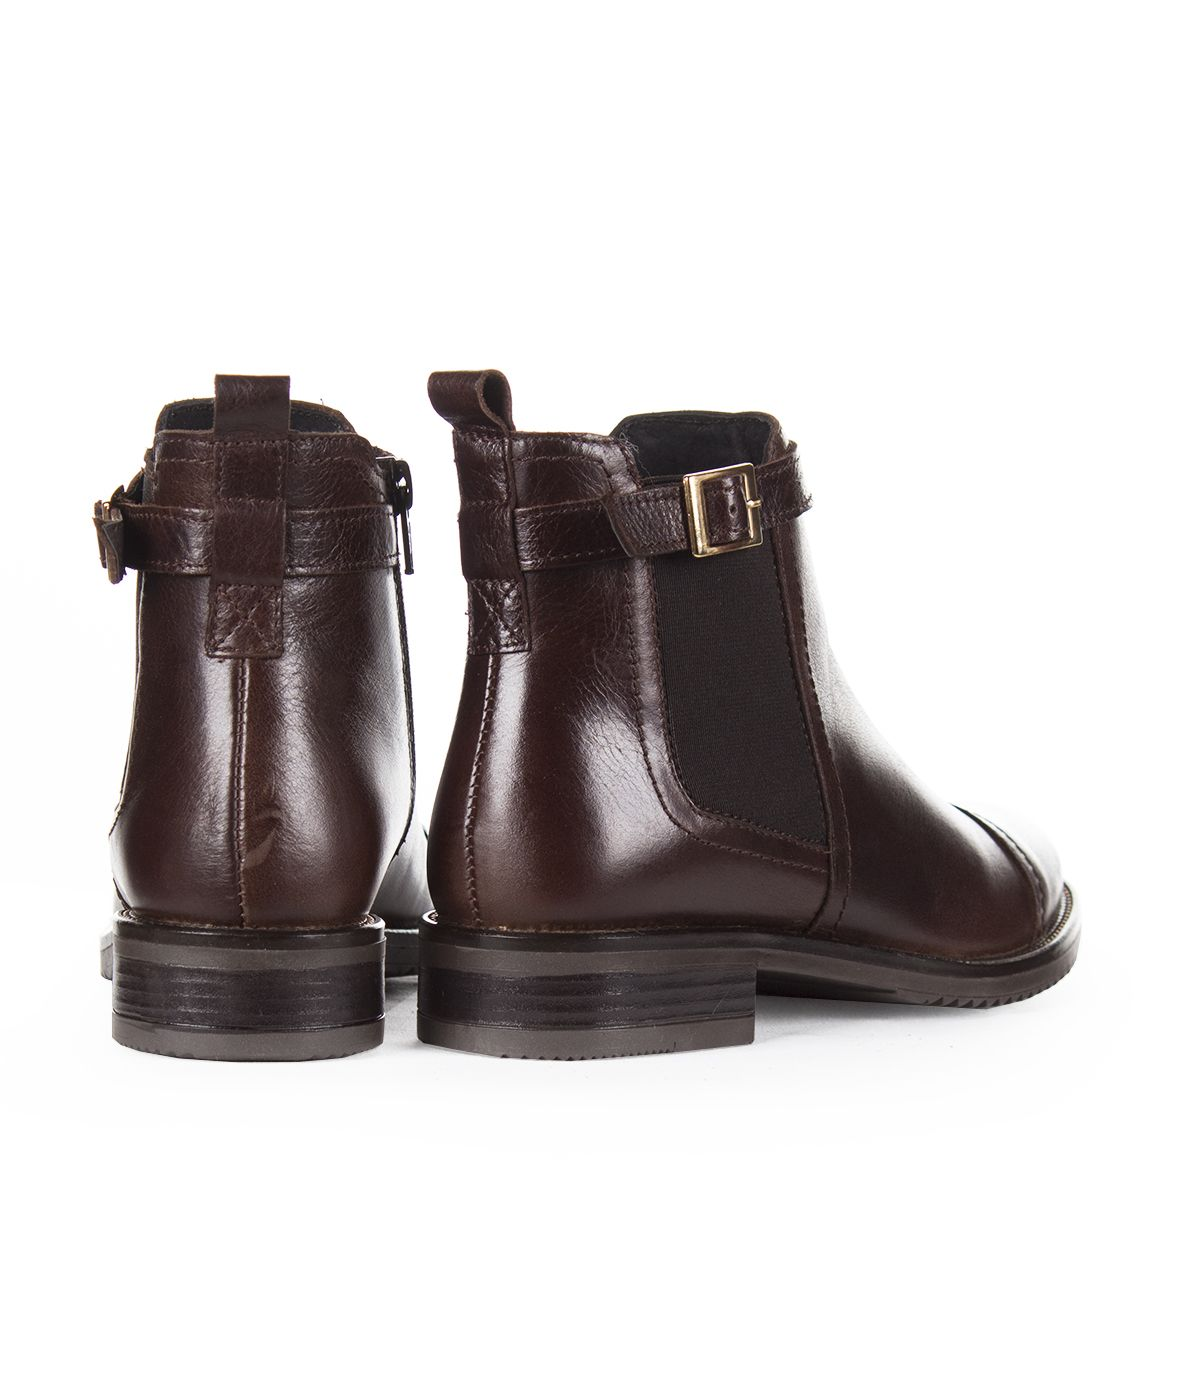 BROWN LEATHER ANKLE BOOTS 2